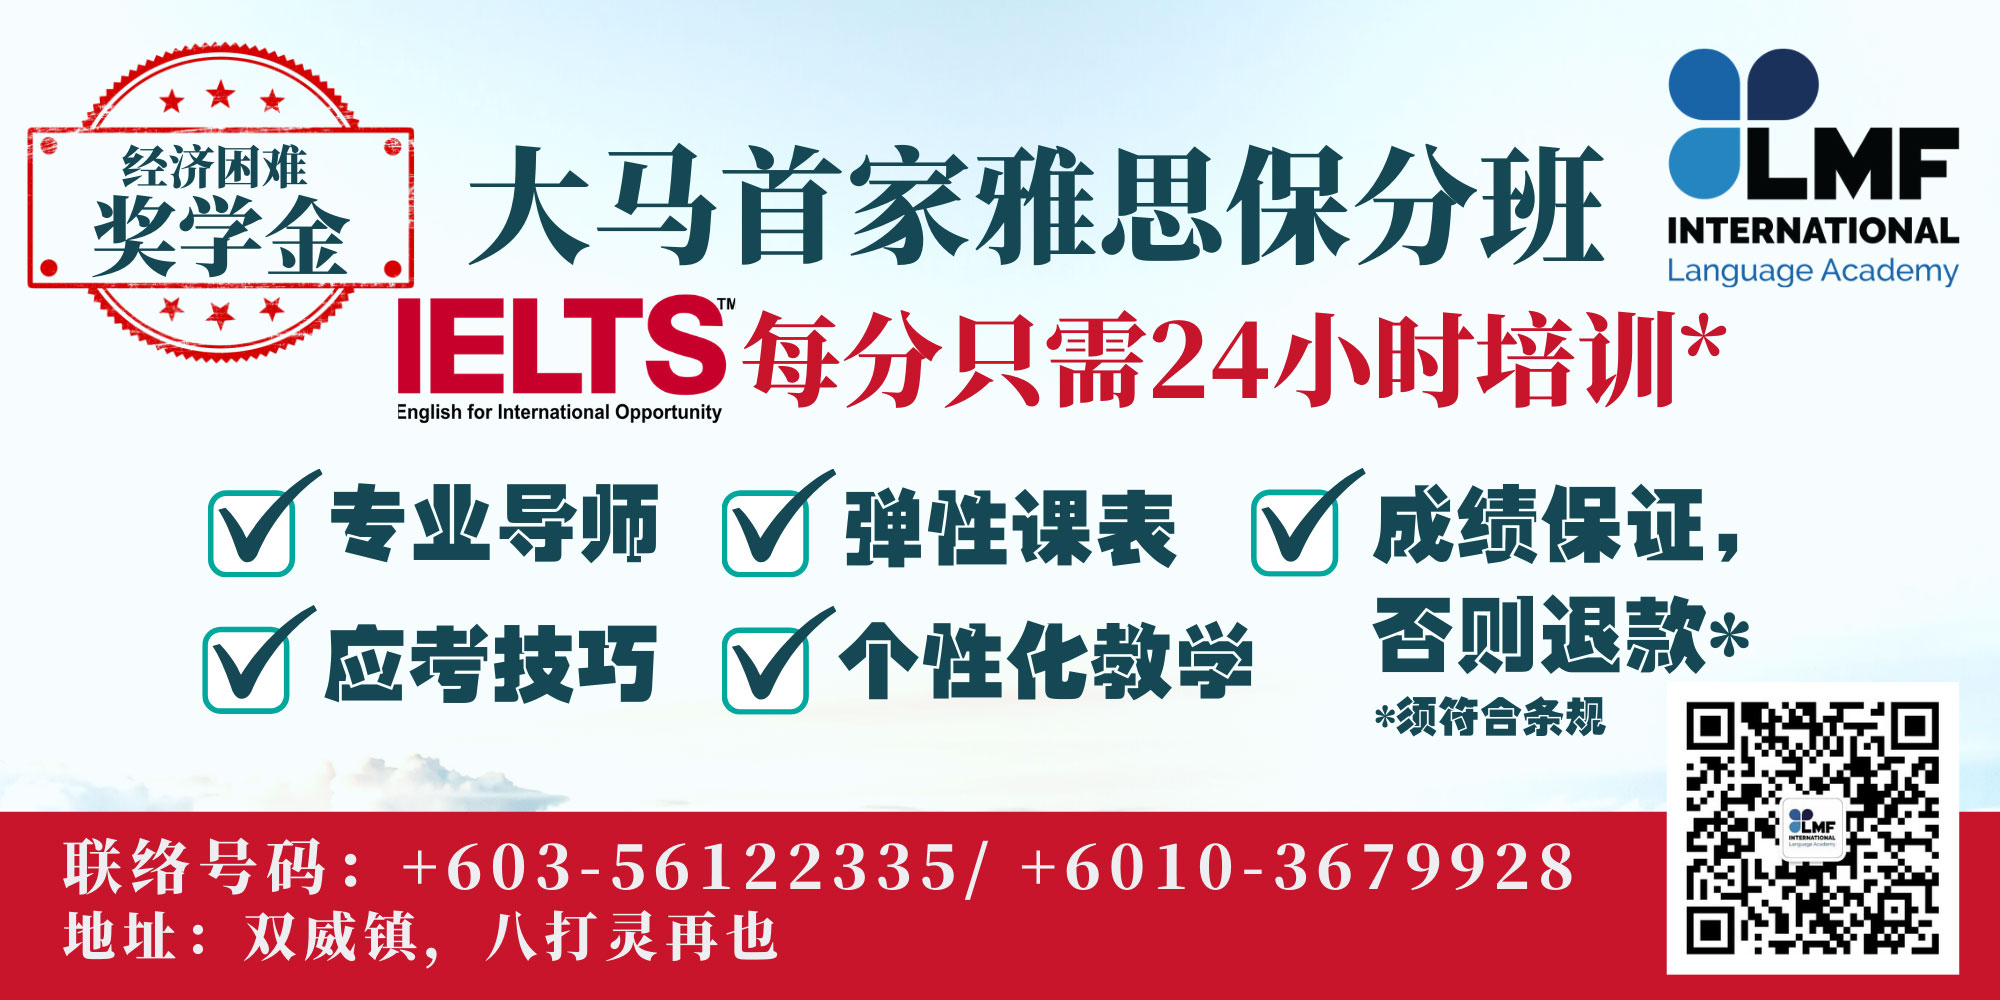 IELTS-Banner-Mandarin-with-Scholarship